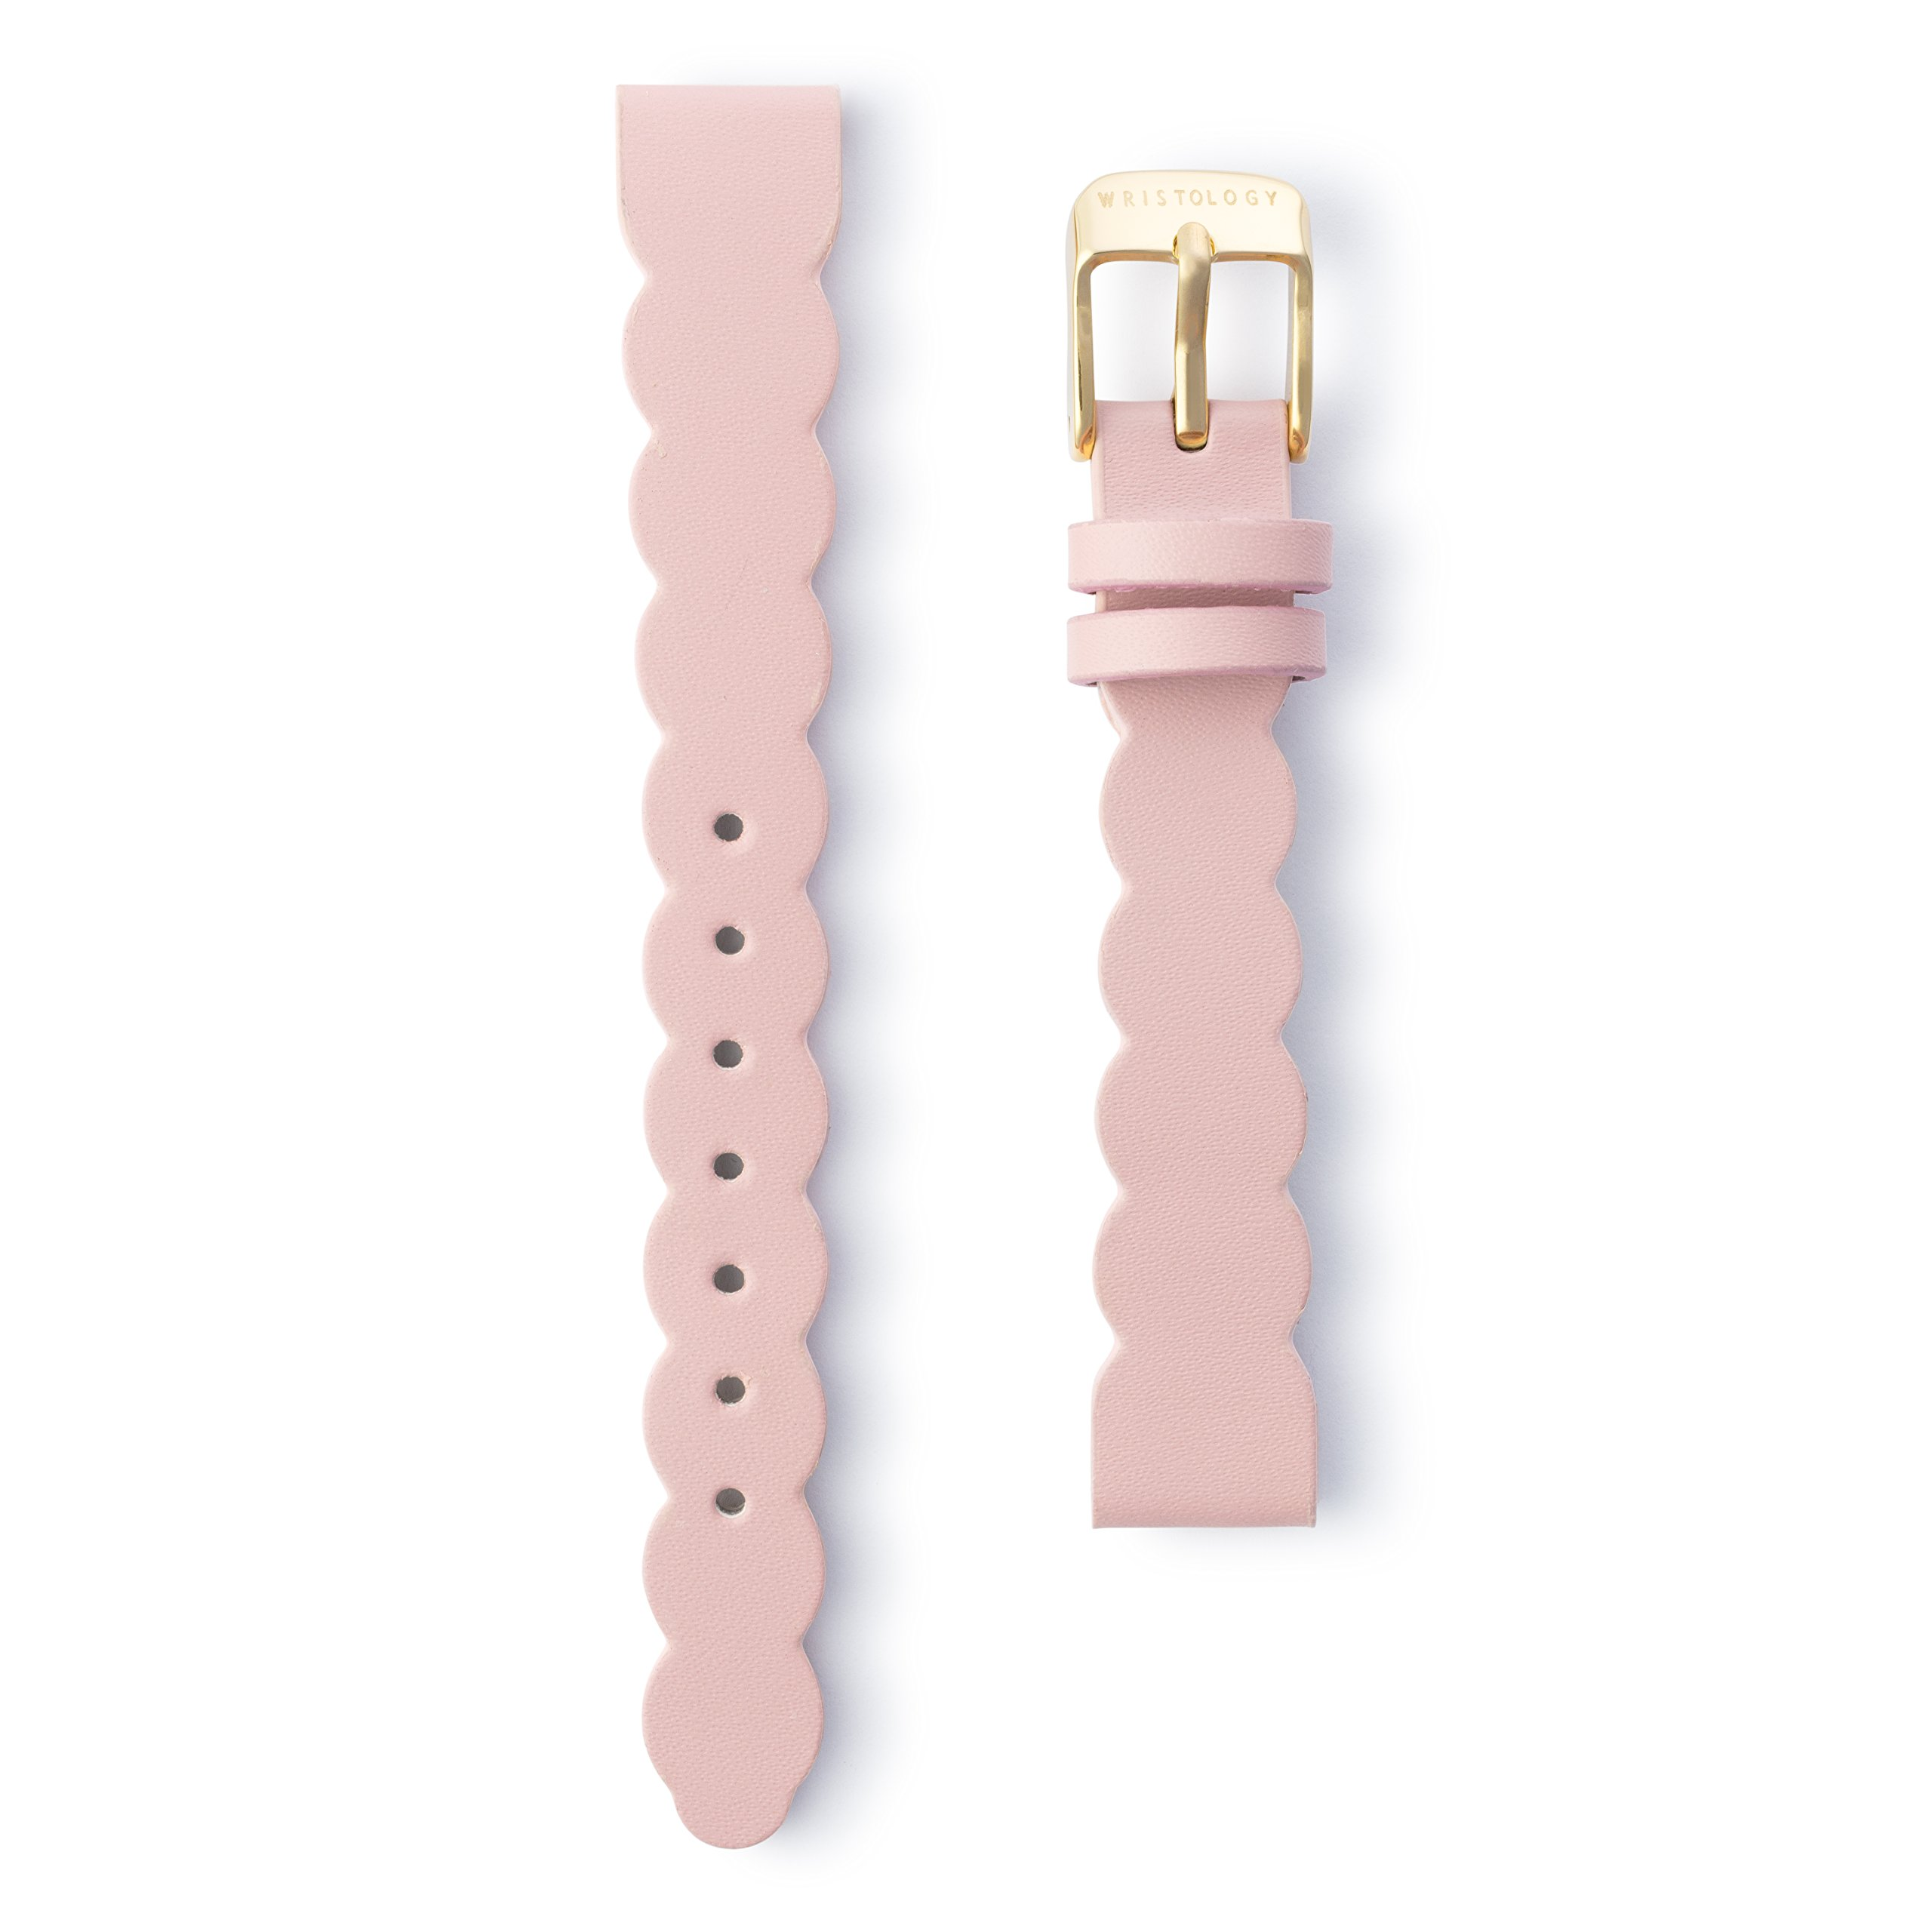 Wristology Gold 14mm Womens Easy Interchangeable Stitched Leather Watch Band (Pink Scallop)